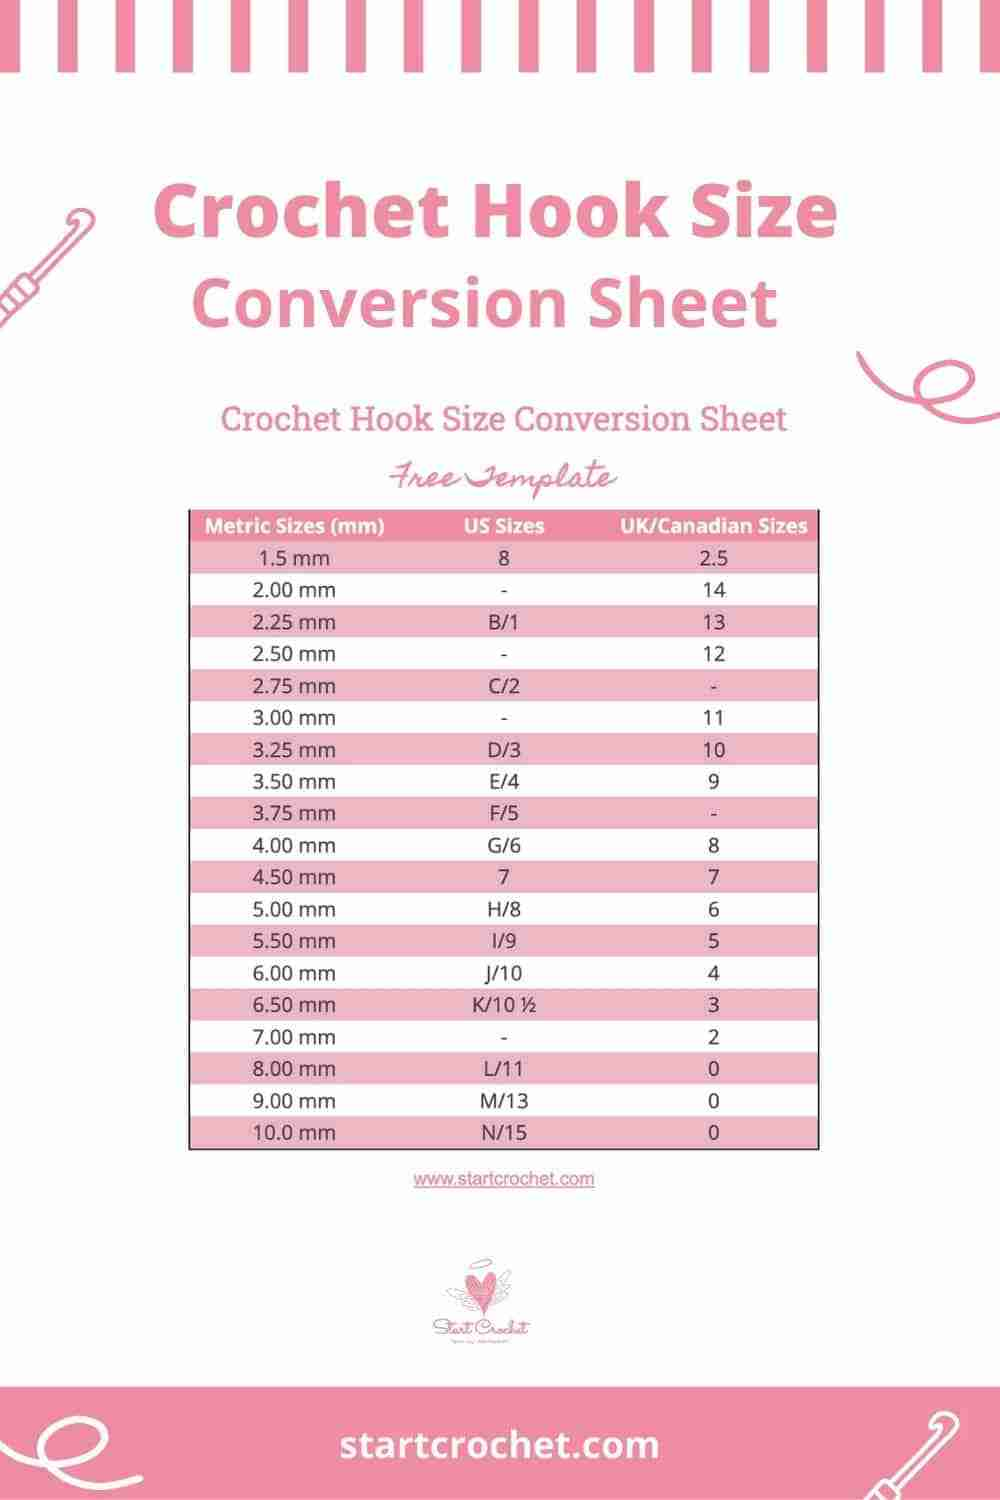 Crochet Hook Size Conversion Sheet Start Crochet